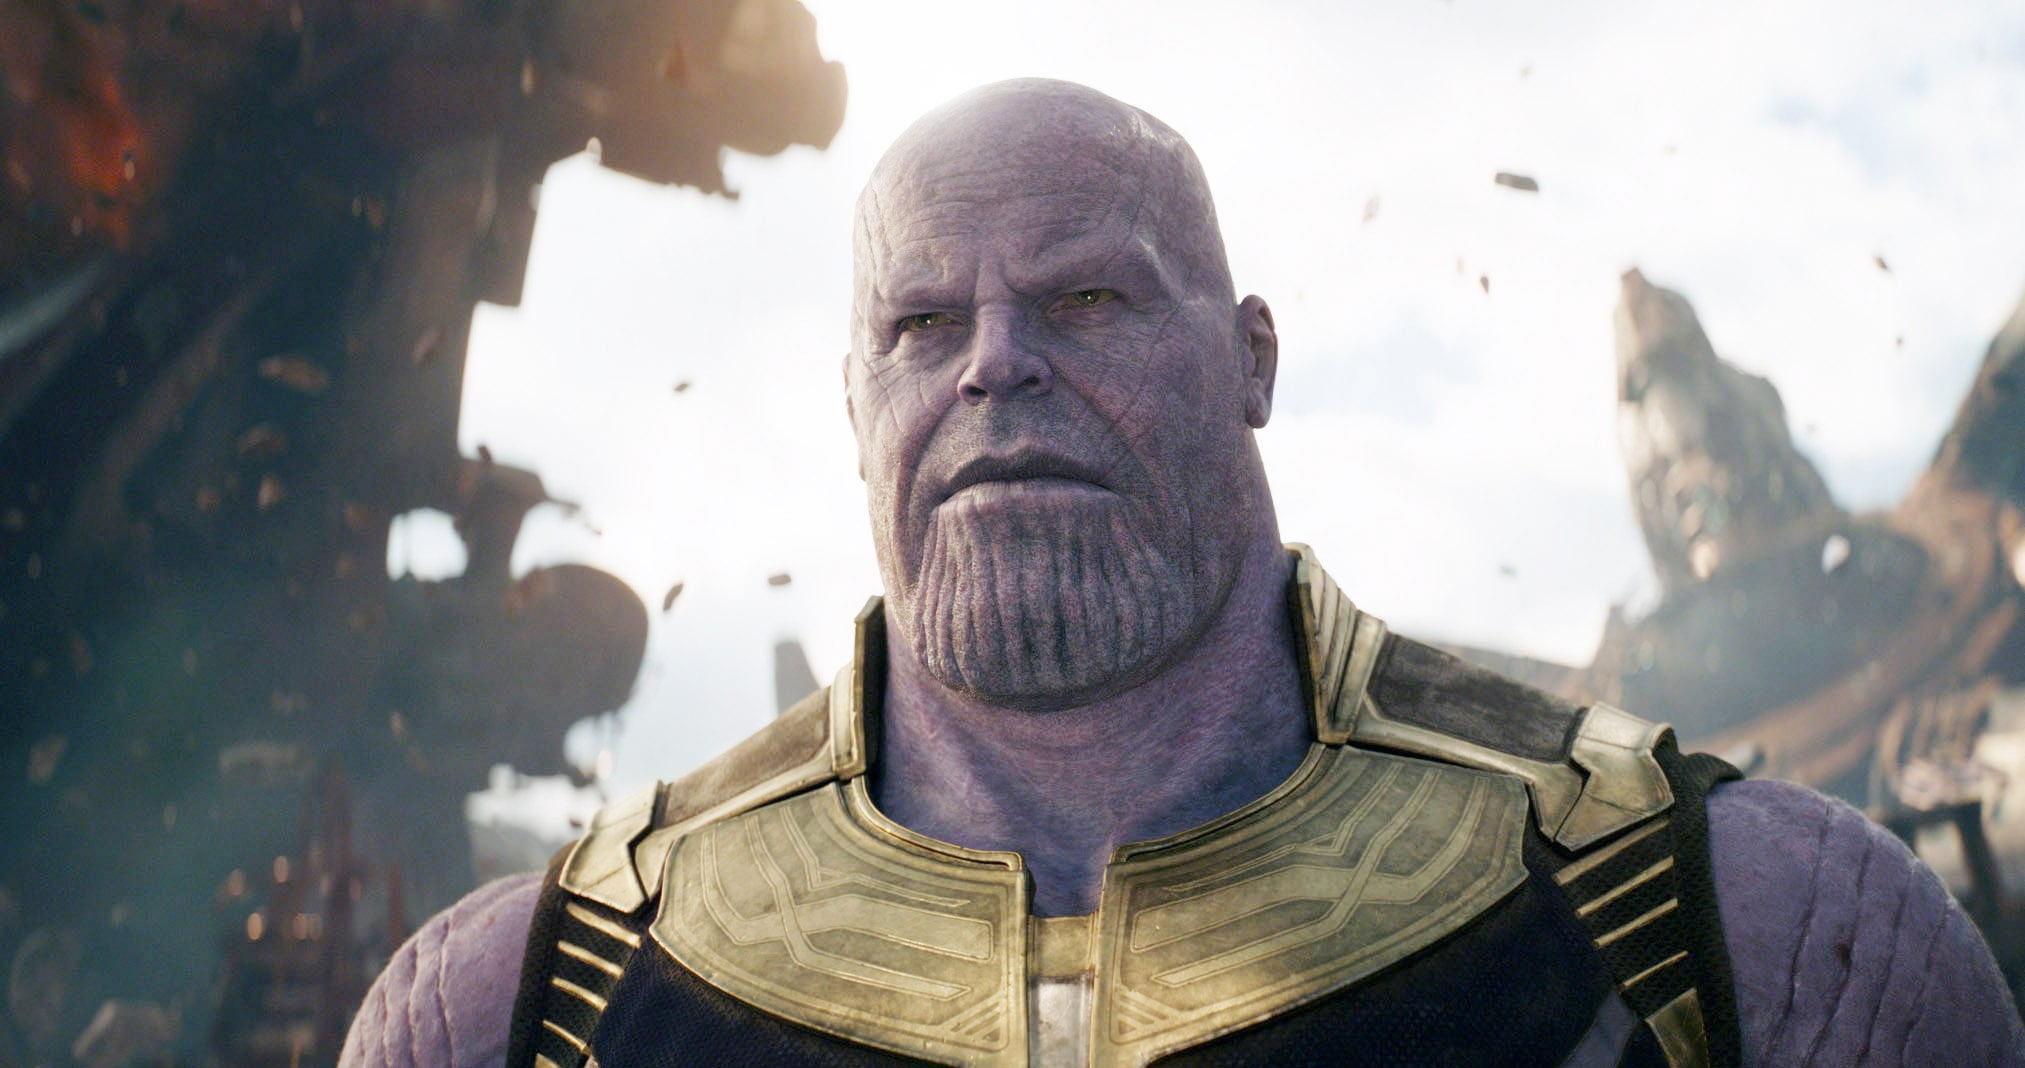 AVENGERS: INFINITY WAR, Josh Brolin as Thanos, 2018.  Marvel/  Walt Disney Studios Motion Pictures /Courtesy Everett Collection